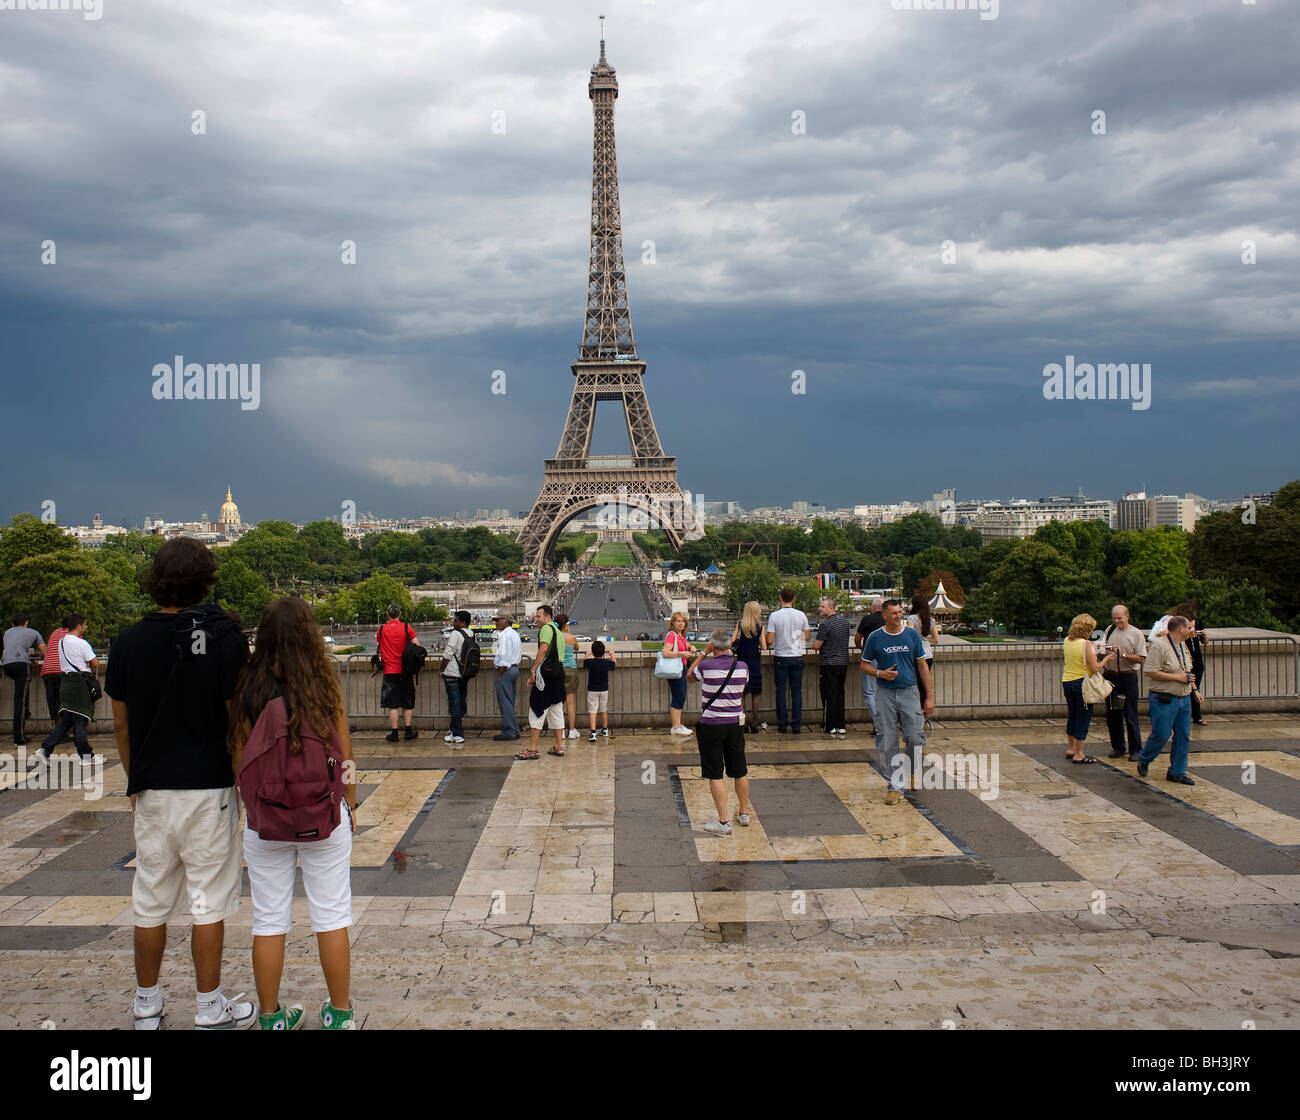 A storm clears as tourists take pictures on the Palais de Chaillot looking towards the Eifel Tower, Paris, France, - Stock Image